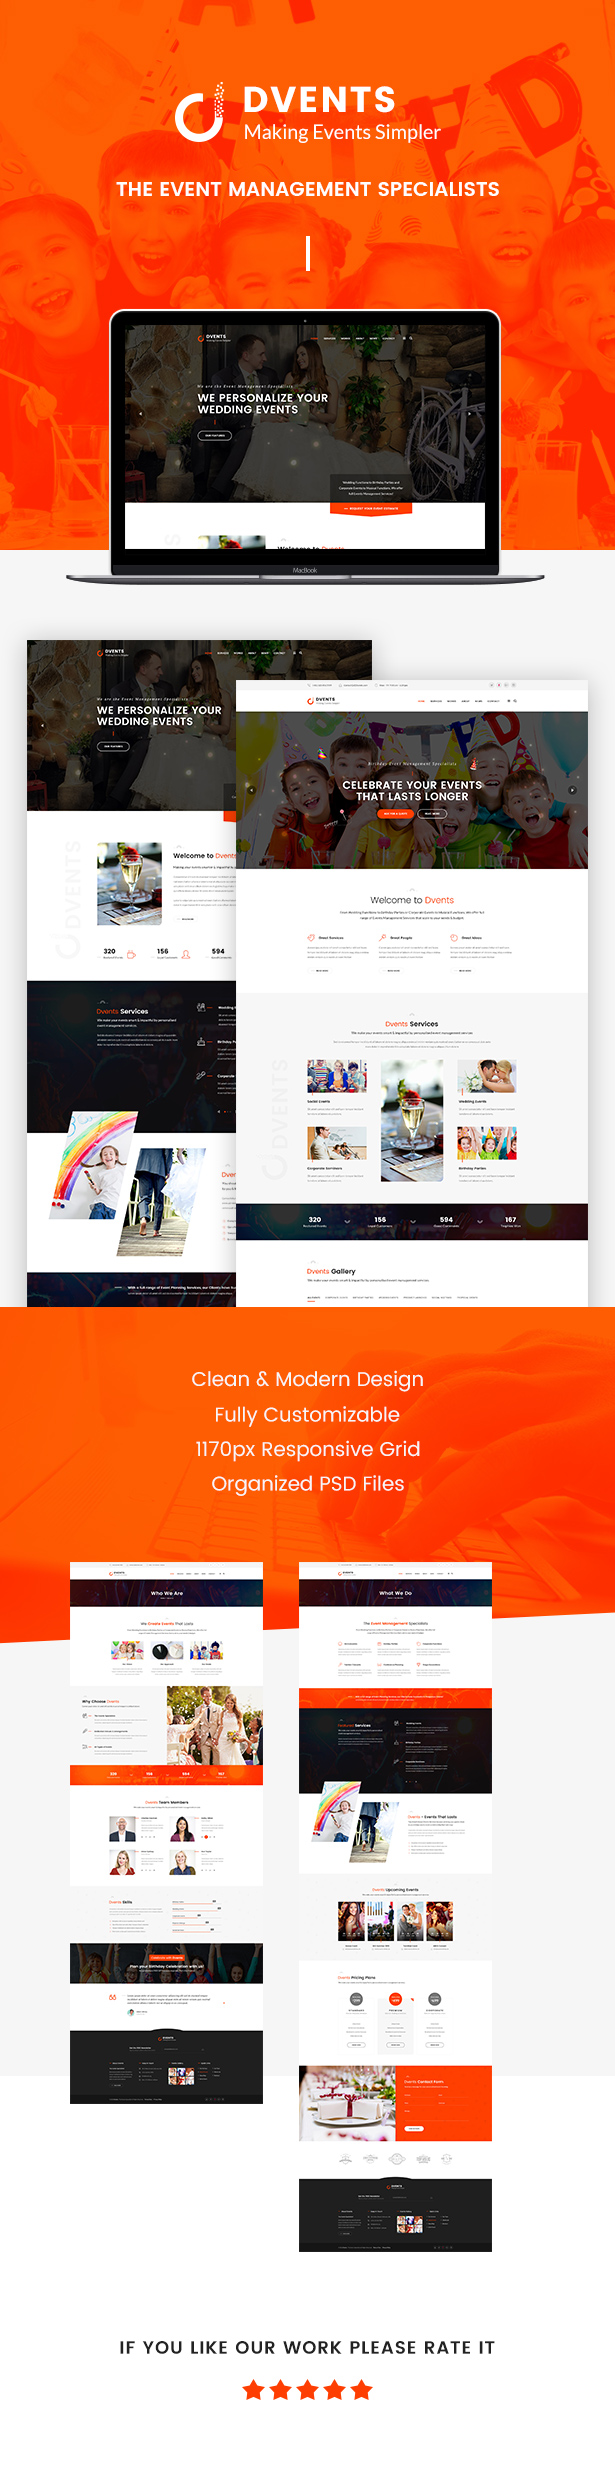 DVENTS - Events HTML Template by Templines   ThemeForest